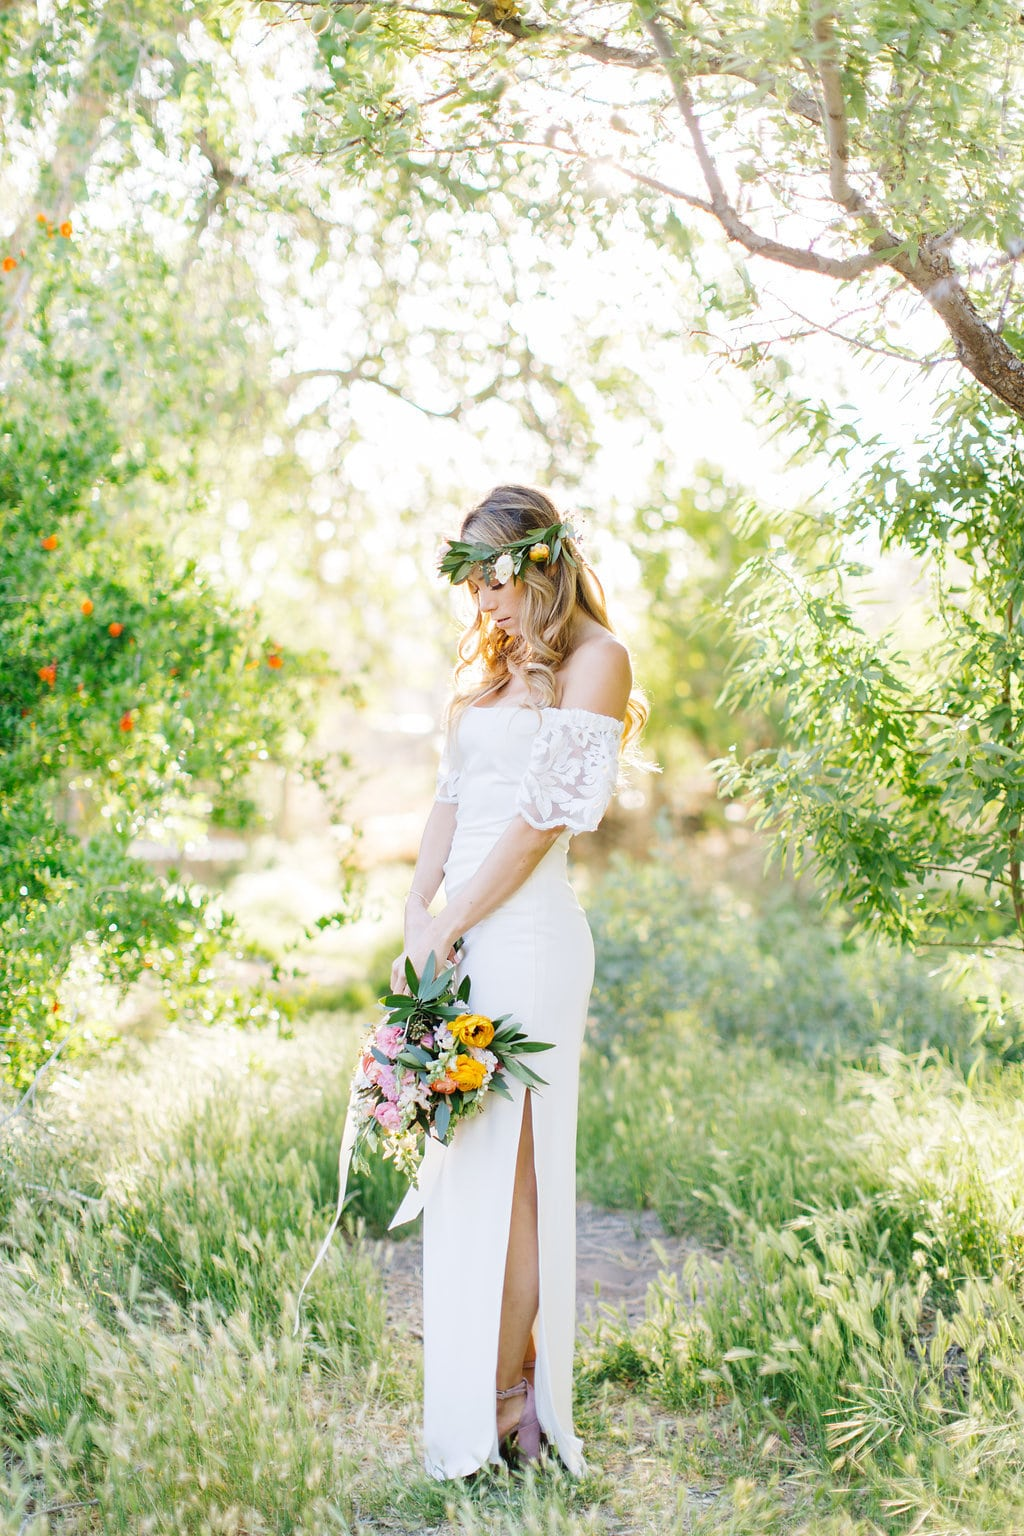 Budget Boho Wedding Dress | Credit: Julia Stockton Photography